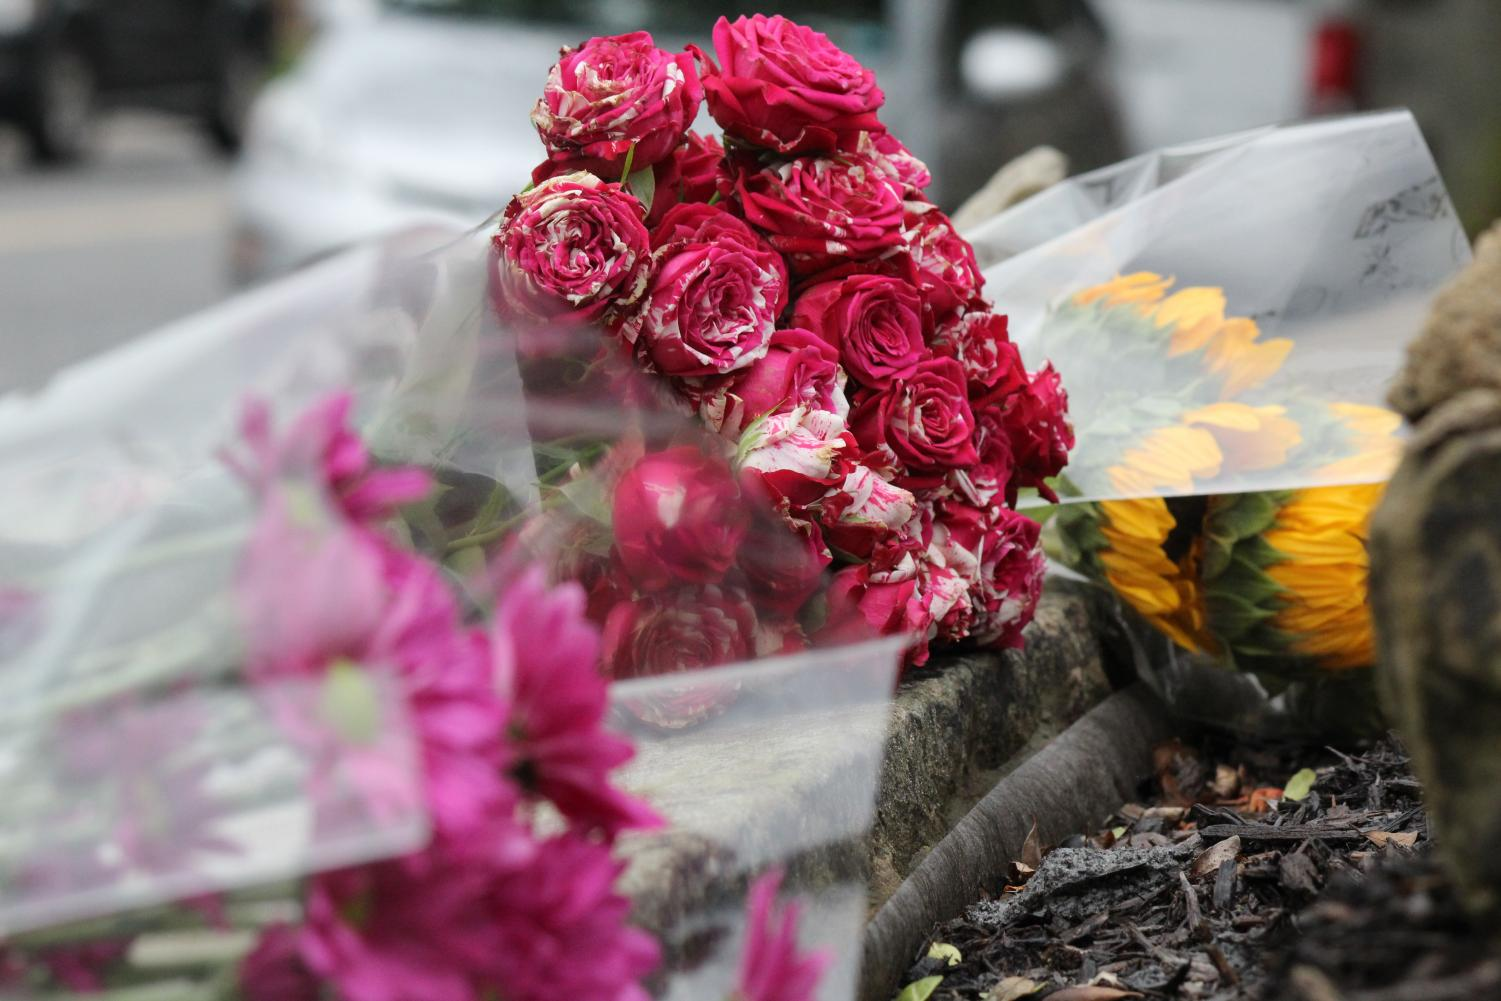 People in and around the Pittsburgh area traveled to the scene with flowers on October 27, 2018 to pay respects to the victims of the shooting at the Tree of Life Synagogue in Squirrel Hill.